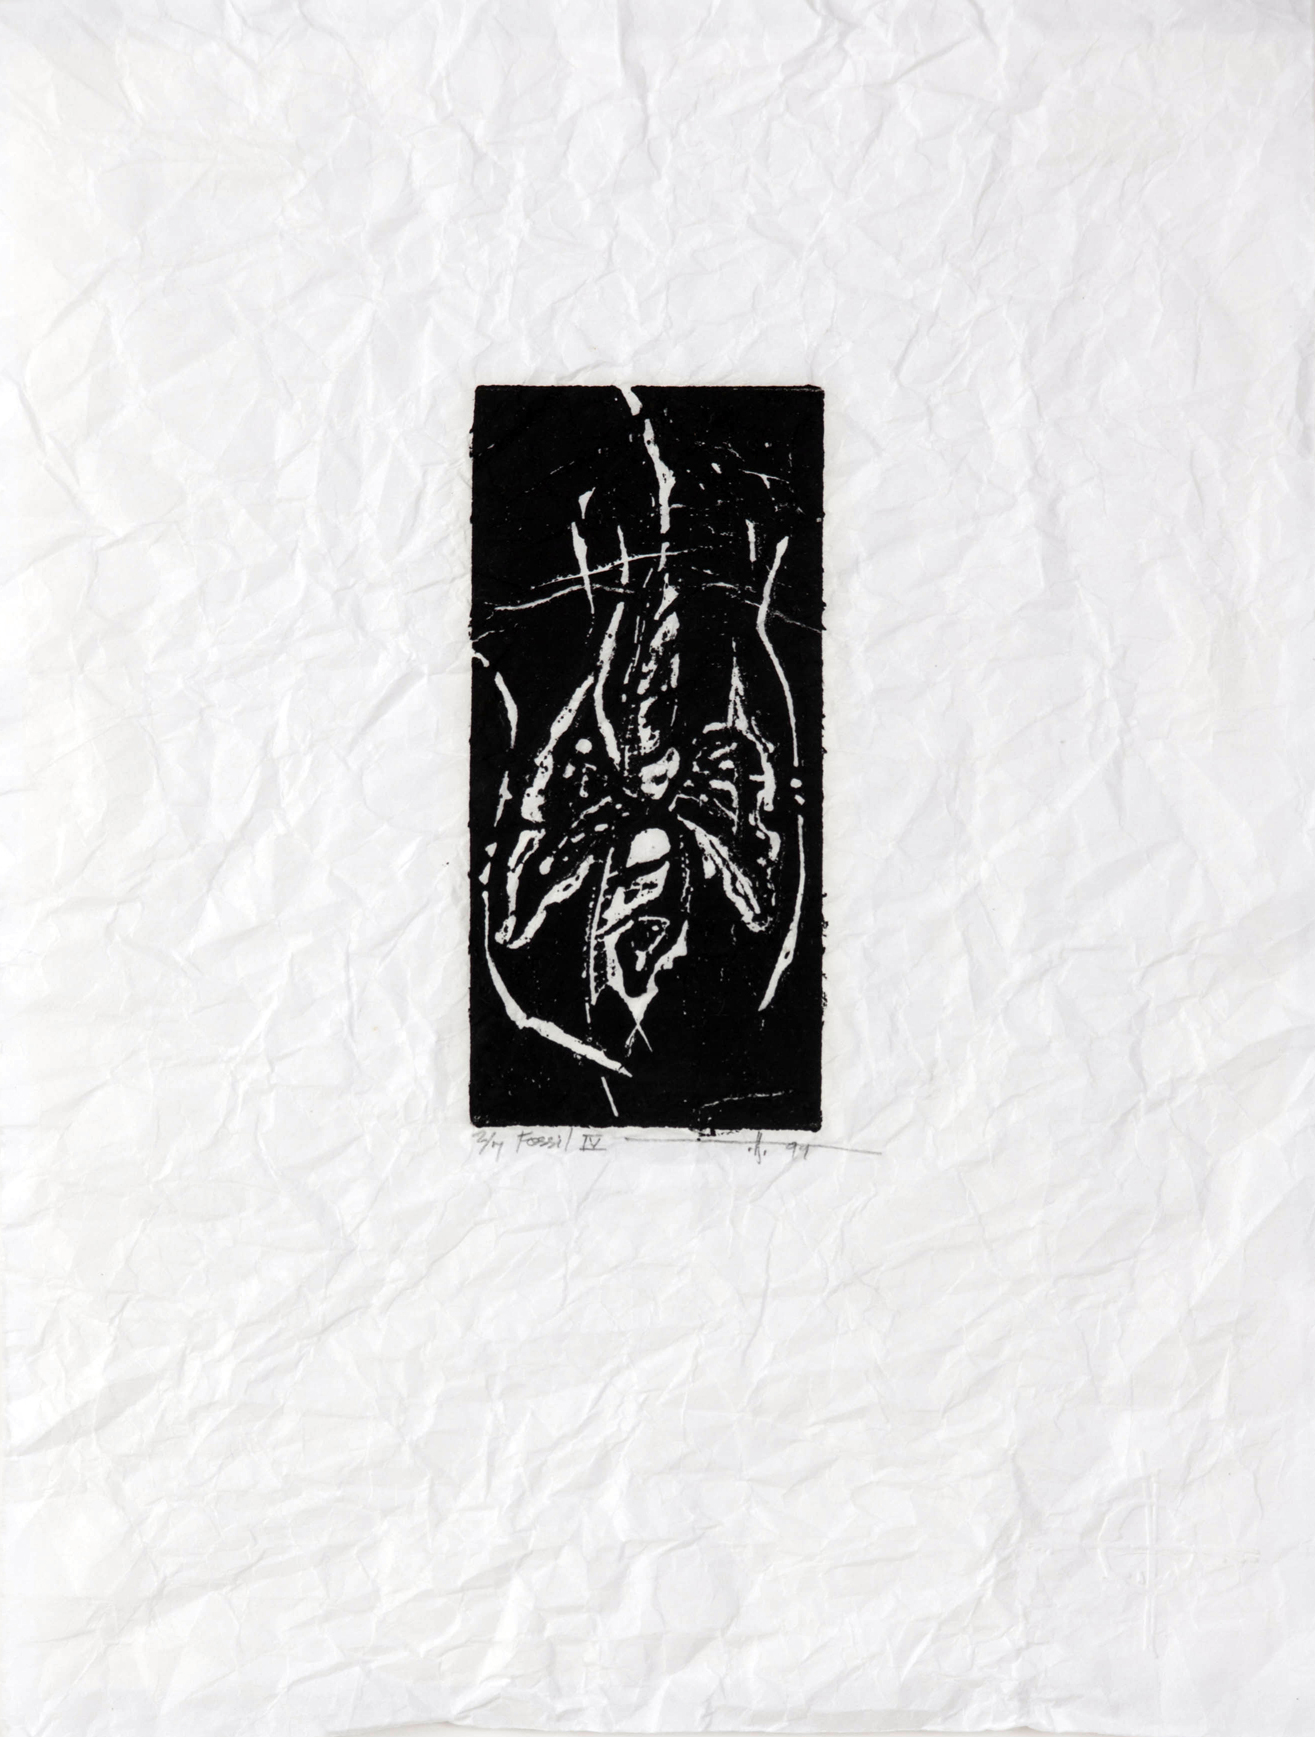 """Fossil 4, BC  Linocut on Distressed Rice Paper 10"""" x 9"""" 2000 / Silence Exhibition 1/7, sold out"""